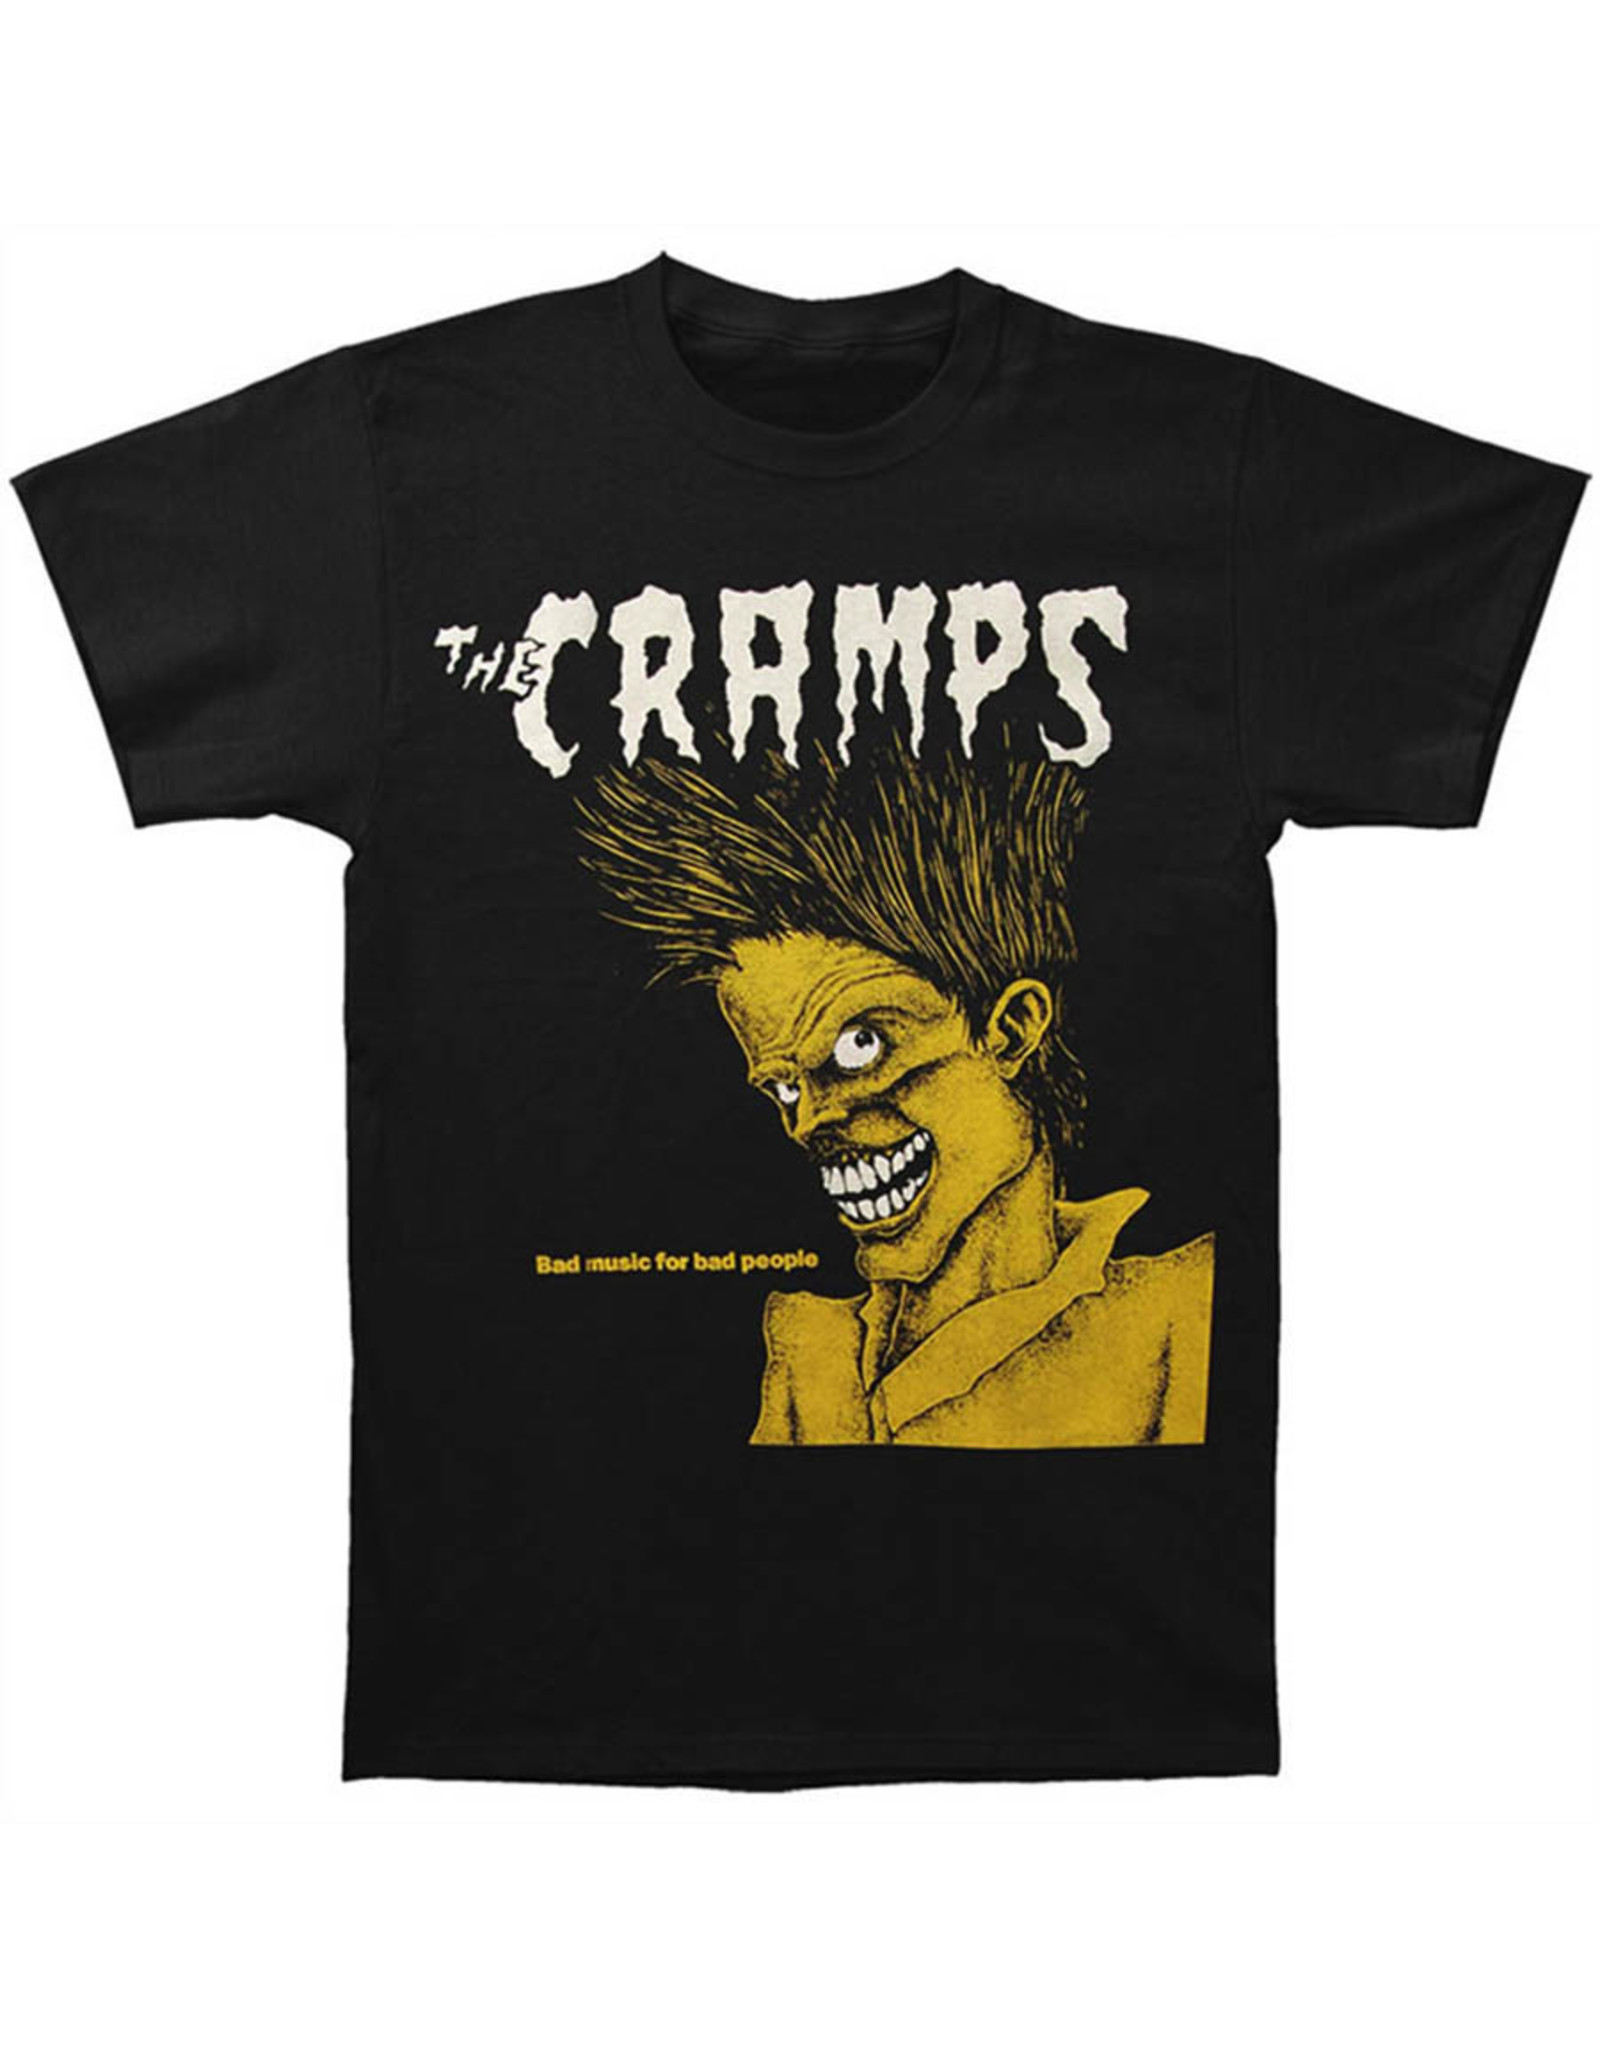 Star 500 Concert Series On Hollywood Tee The Cramps Bad Music S/S (Black)